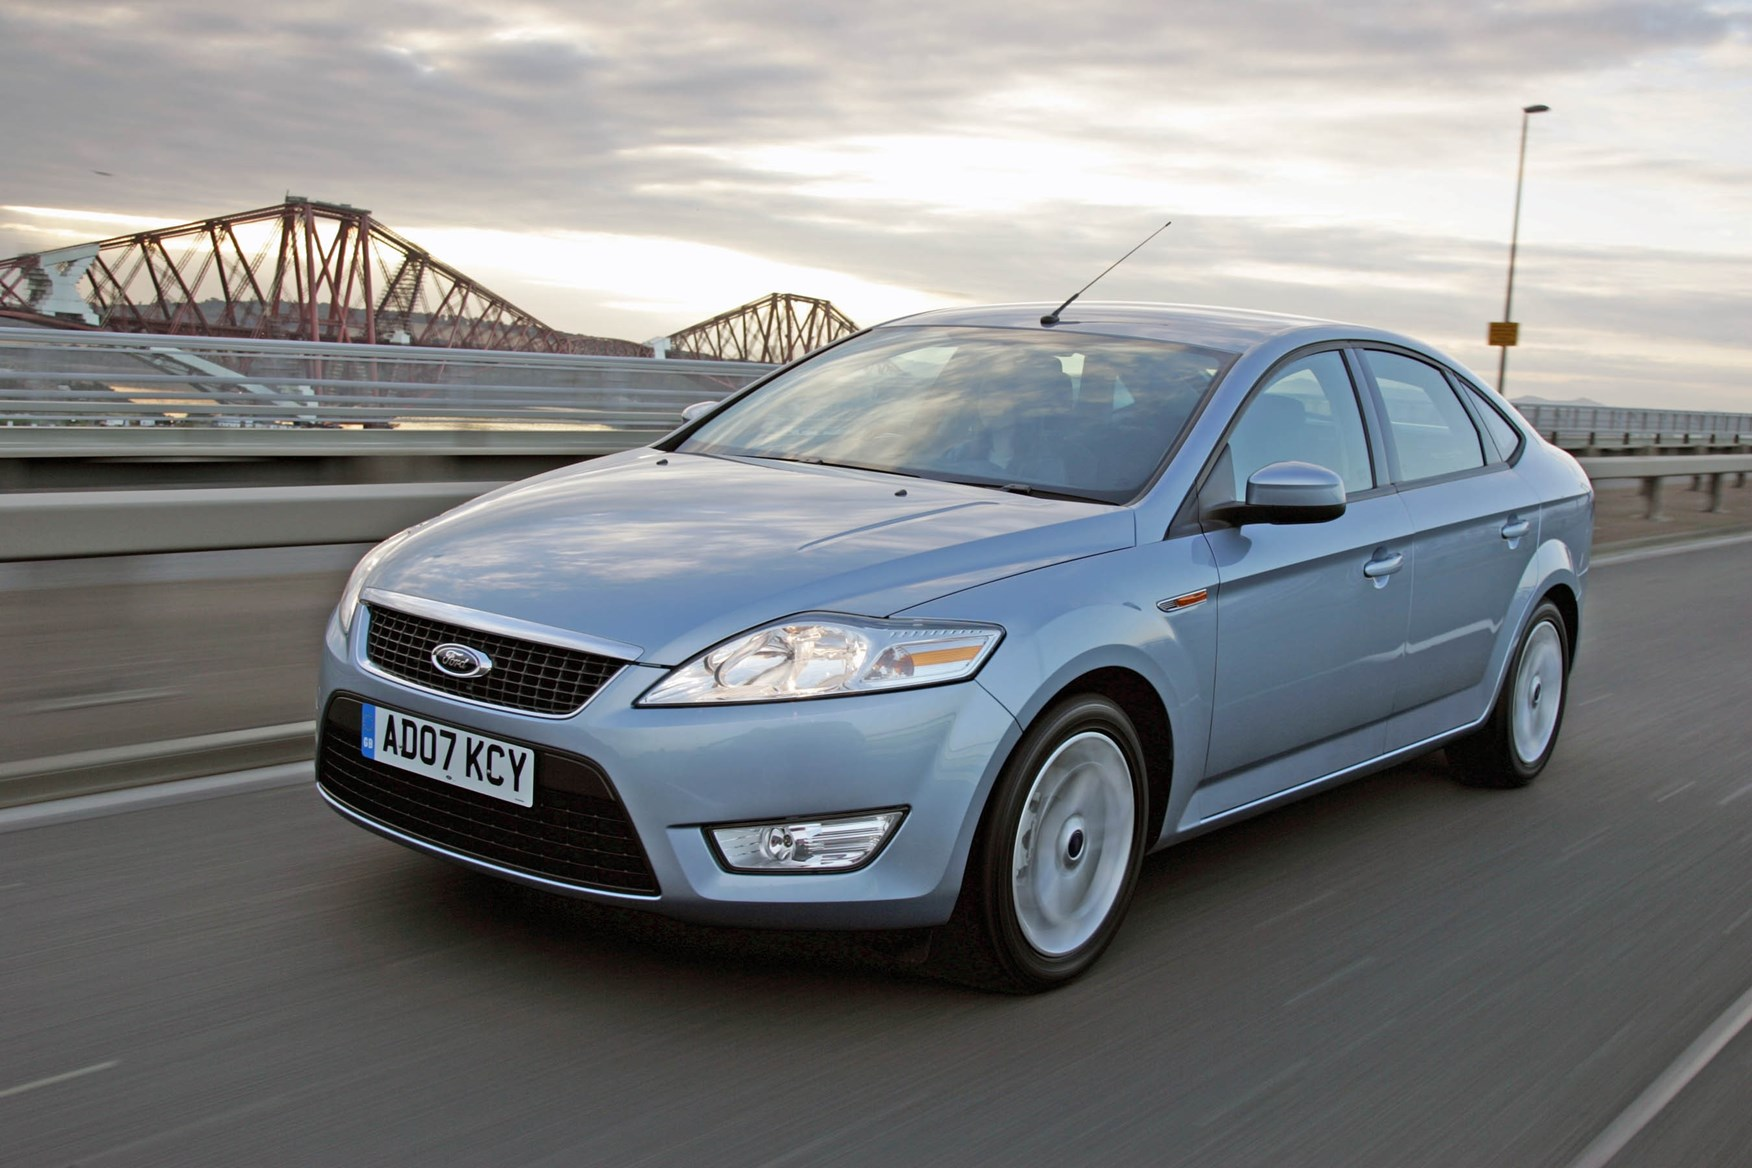 2010 Ford Mondeo #20